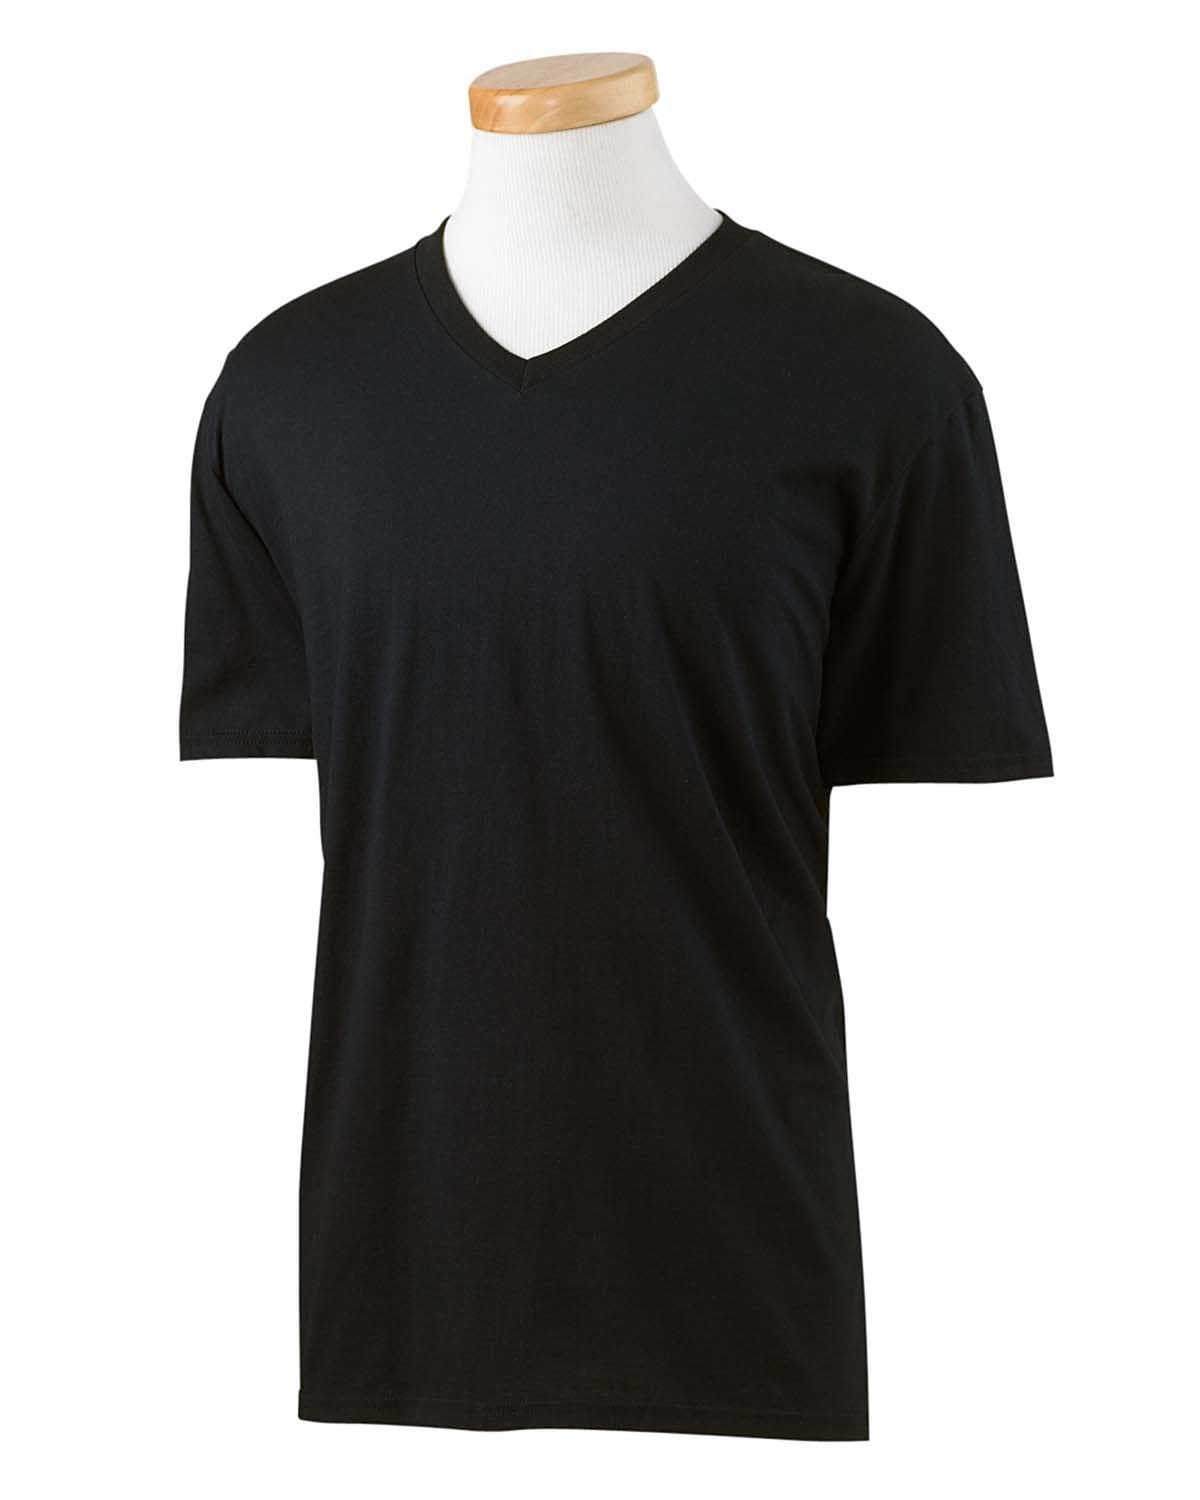 g64v-adult-softstyle-4-5-oz-v-neck-t-shirt-XSmall-BLACK-Oasispromos